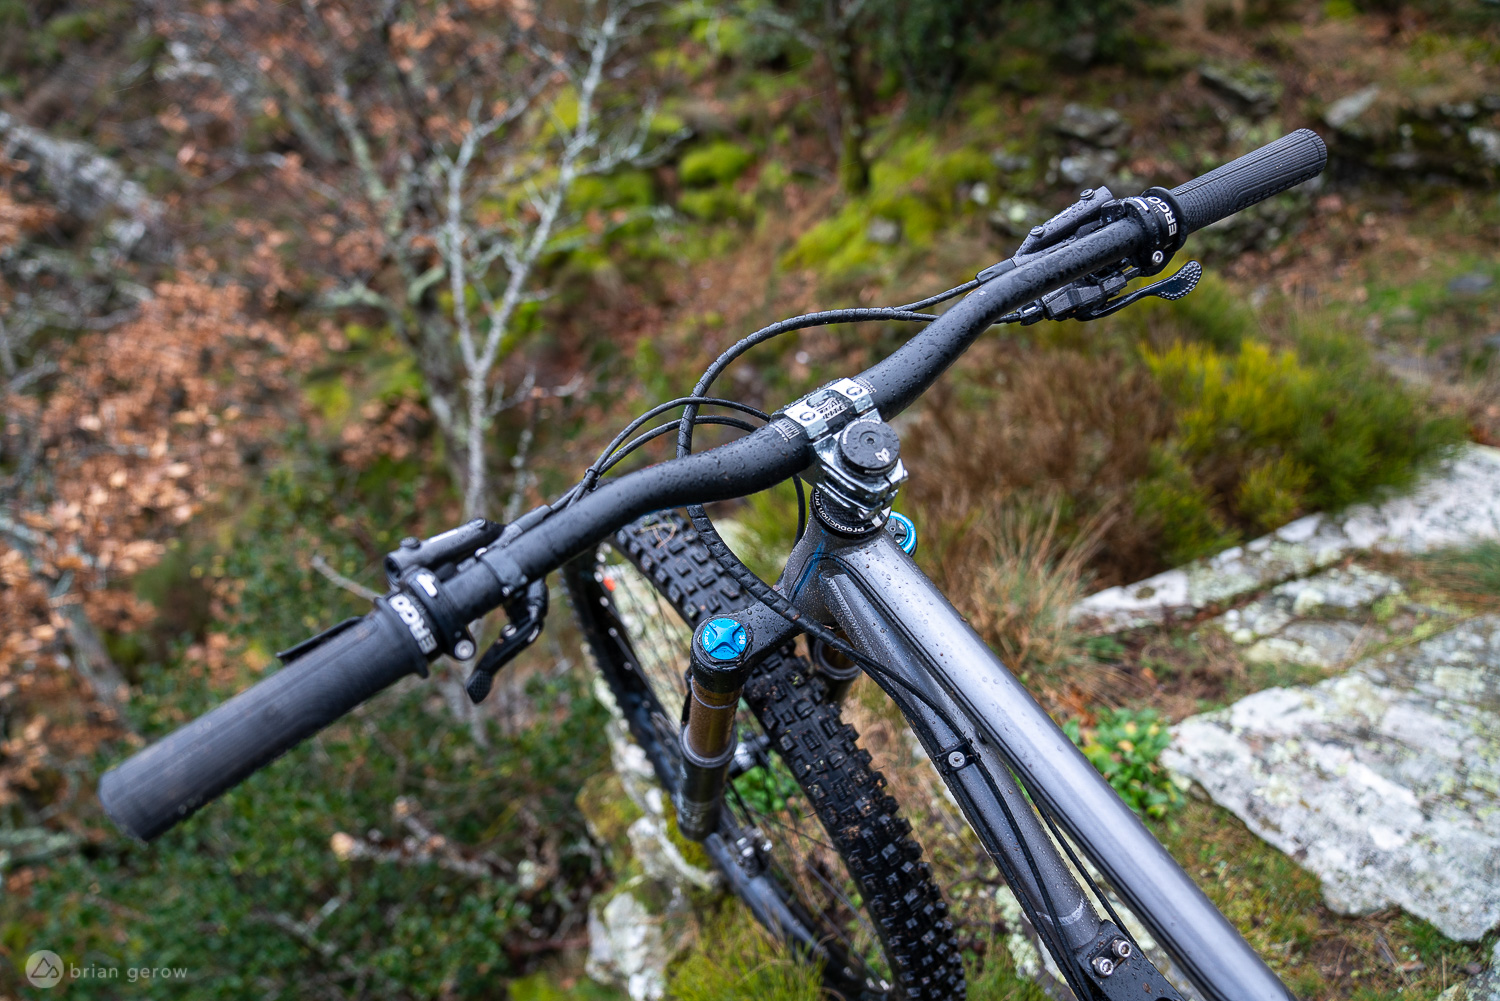 The Production Privee Shan N°5 is a Unique Steel Full Suspension Mountain Bike [Test Ride Review] - Singletracks Mountain Bike News